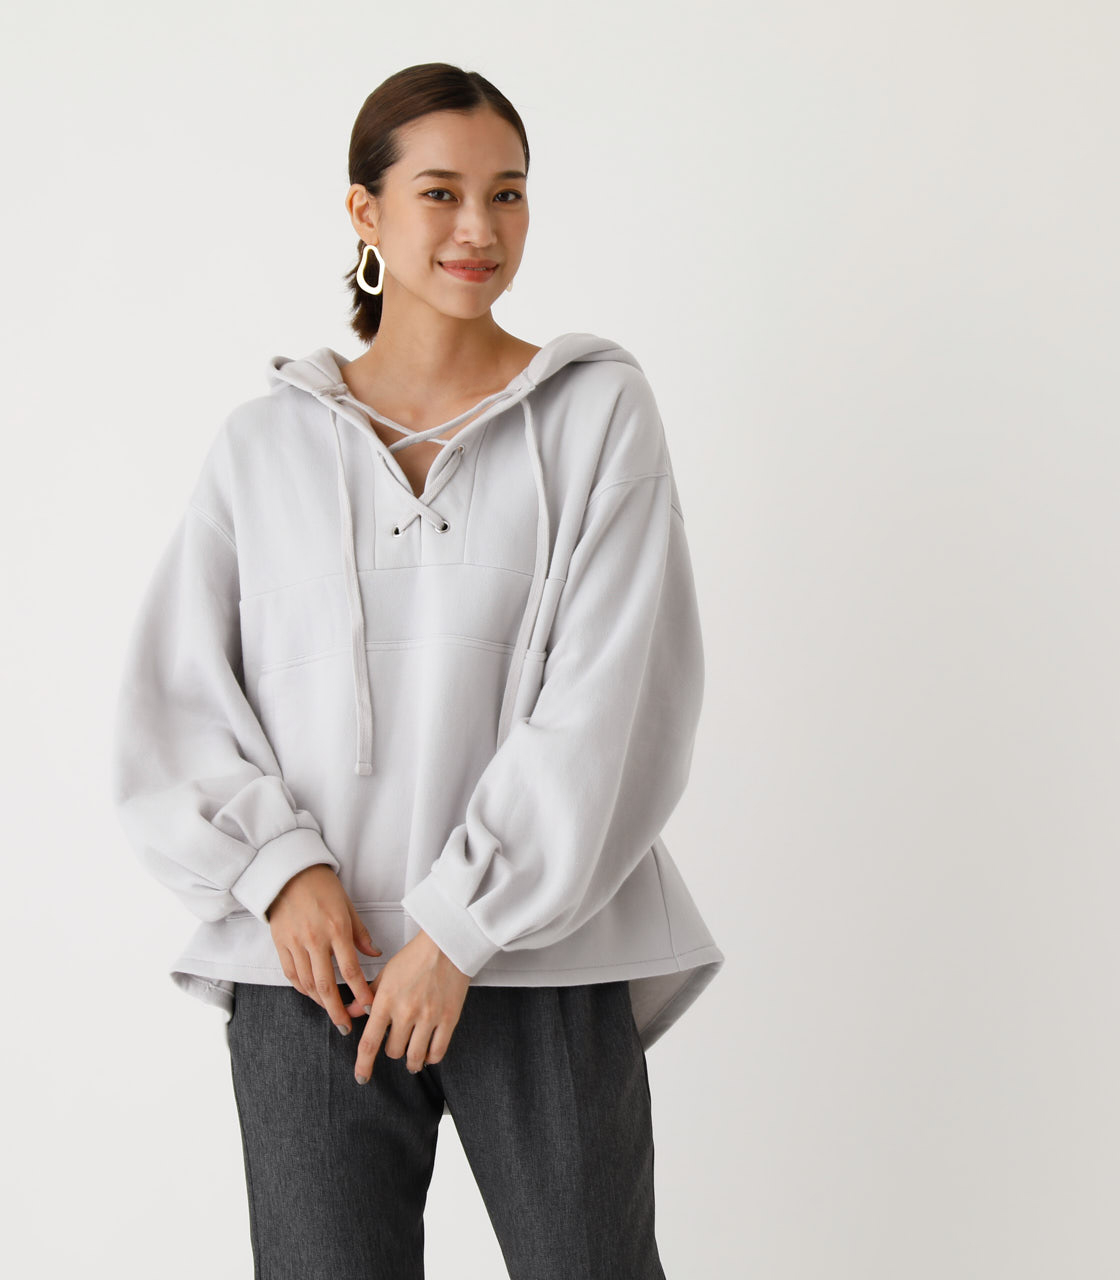 LACE-UP LOOSE HOODIE/レースアップルーズフーディ 詳細画像 L/GRY 1